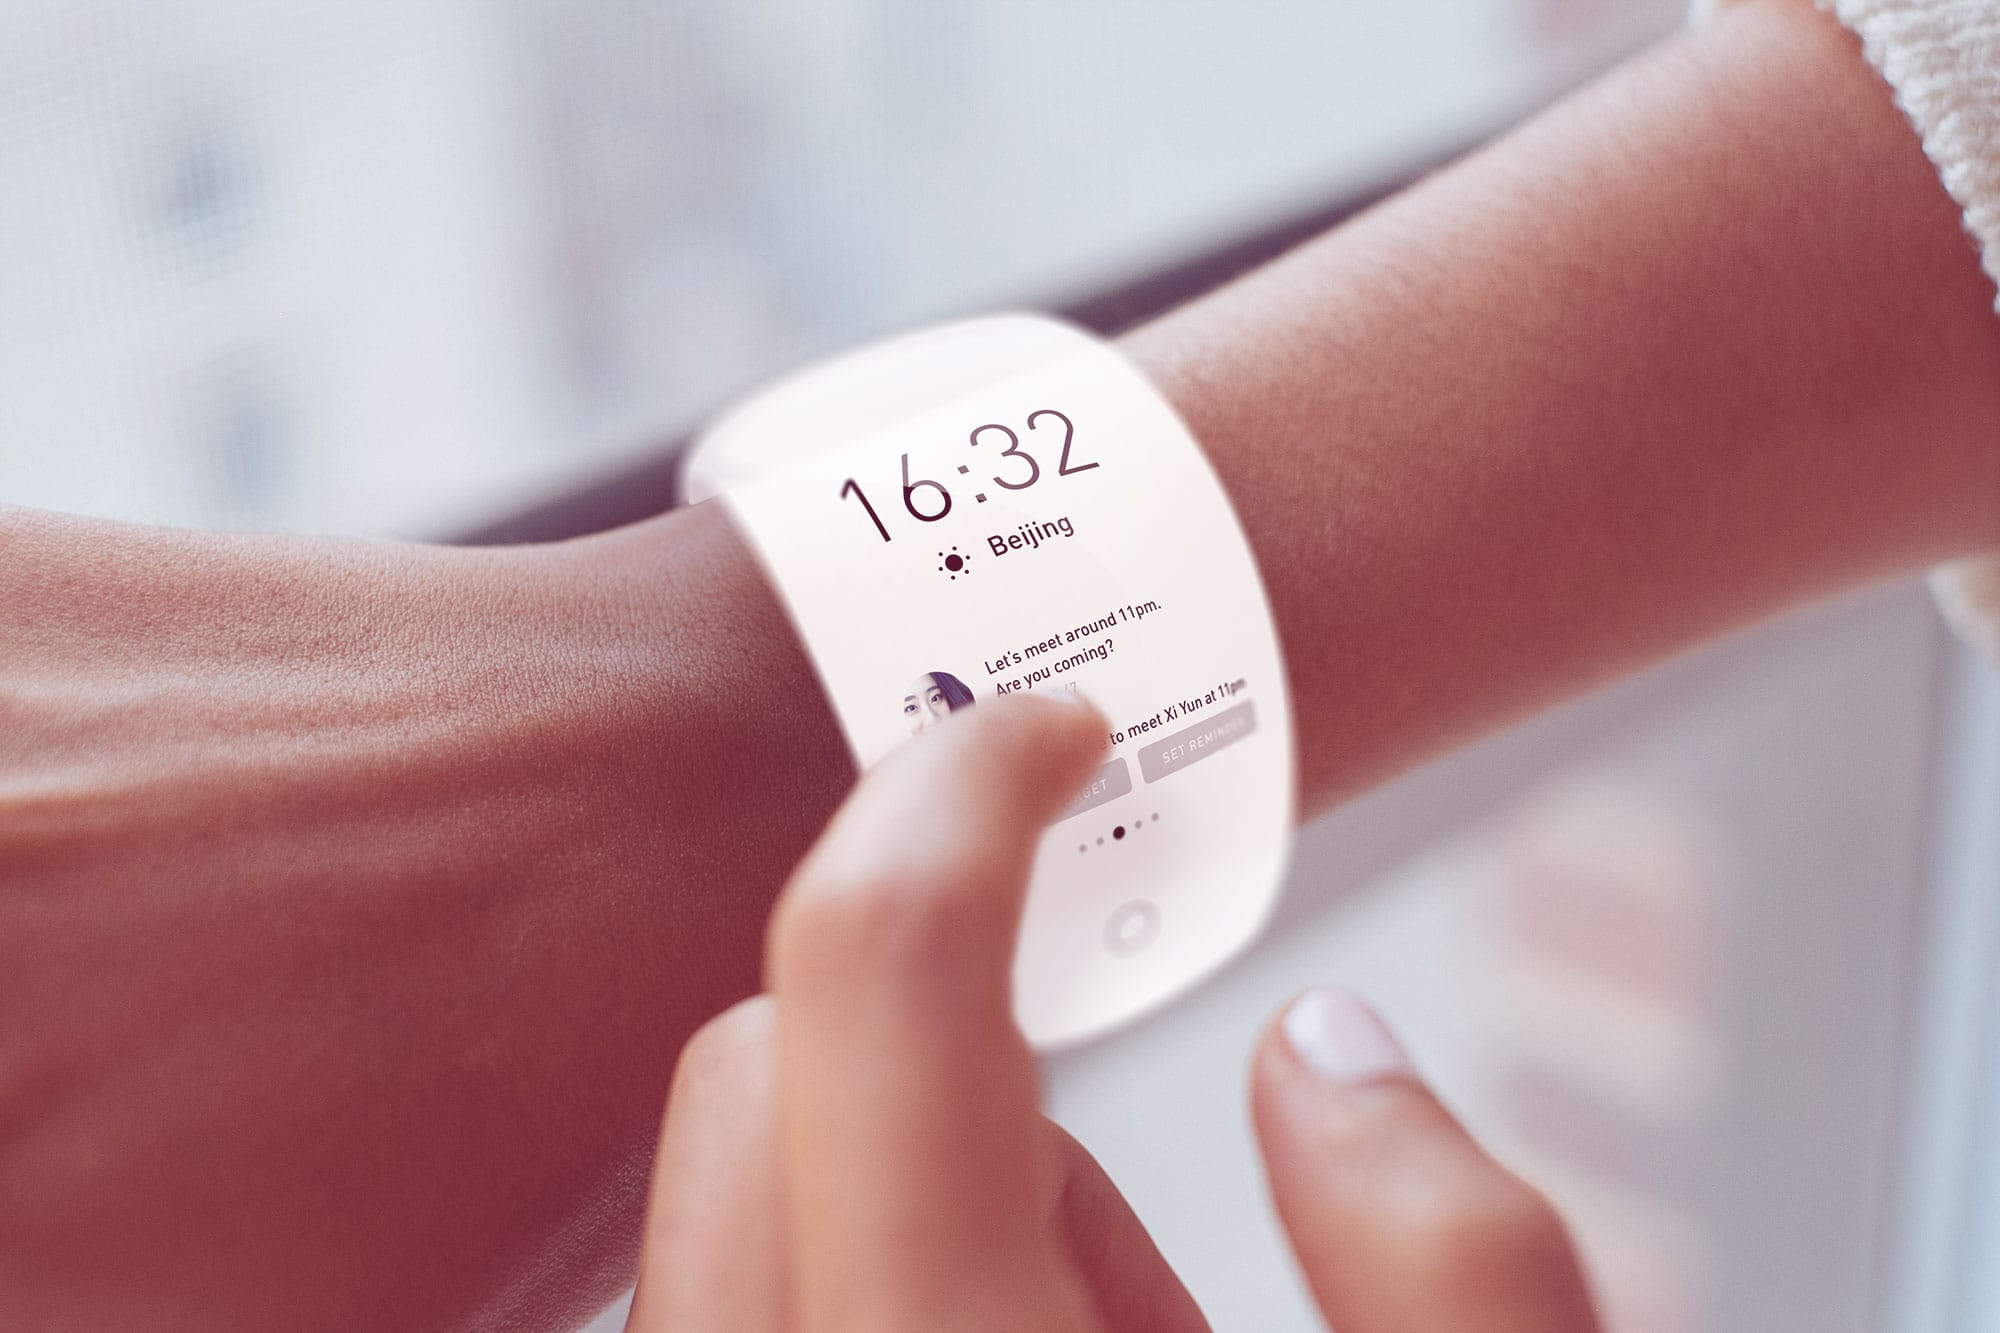 Concept visualization of a smart watch interface